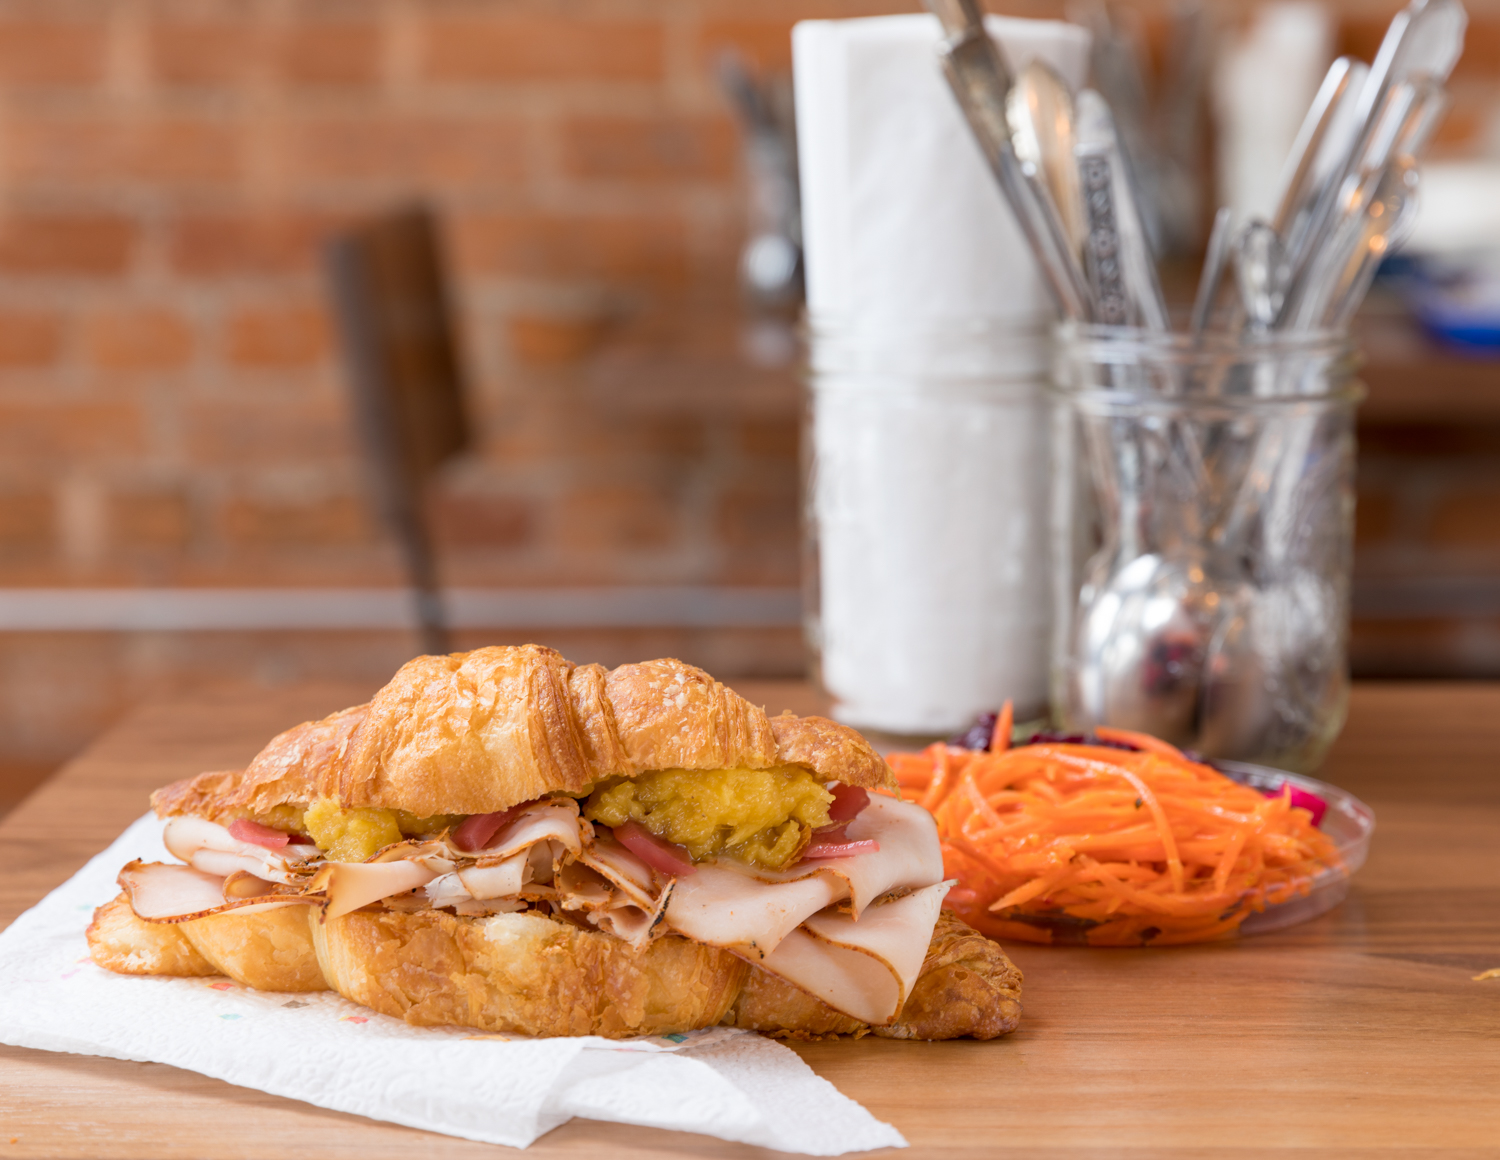 Turkey with pickled onions on croissant with squash mash and side of pickled carrot{ }/ Image: Marlene Rounds // Published: 3.12.19